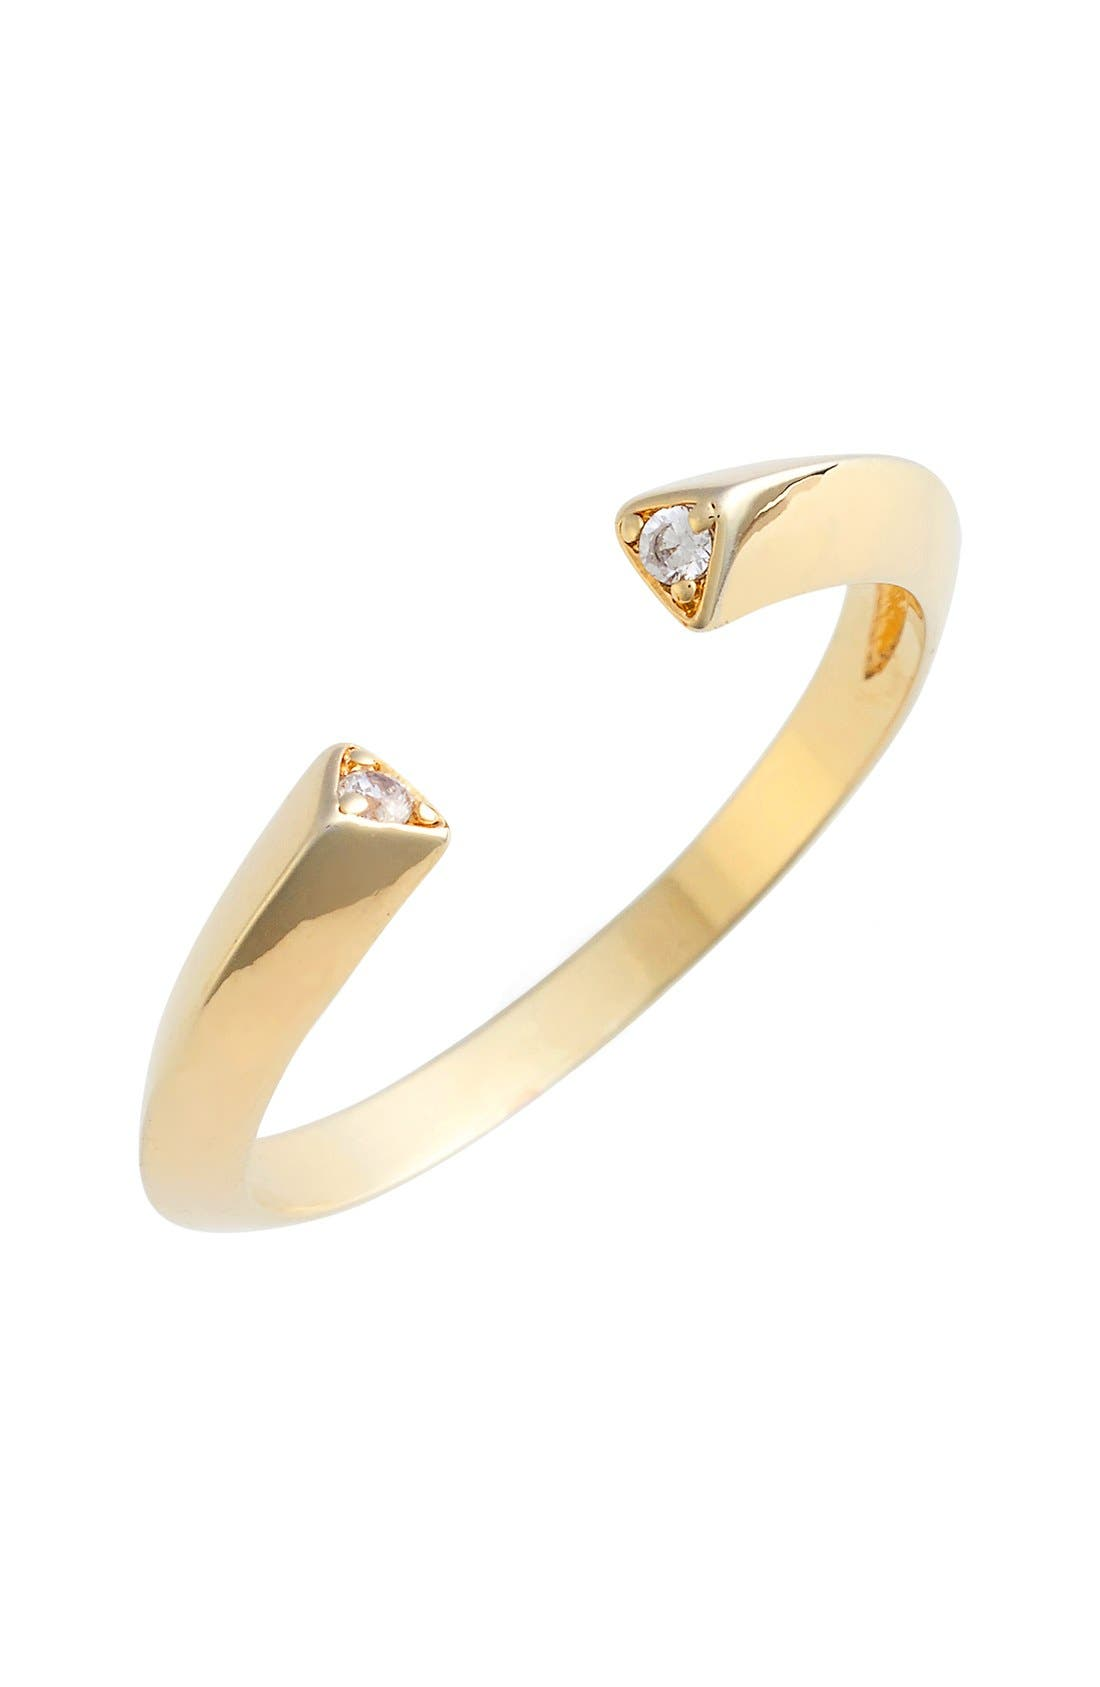 Pavé Triangle Ring,                         Main,                         color, Yellow Gold/ Clear